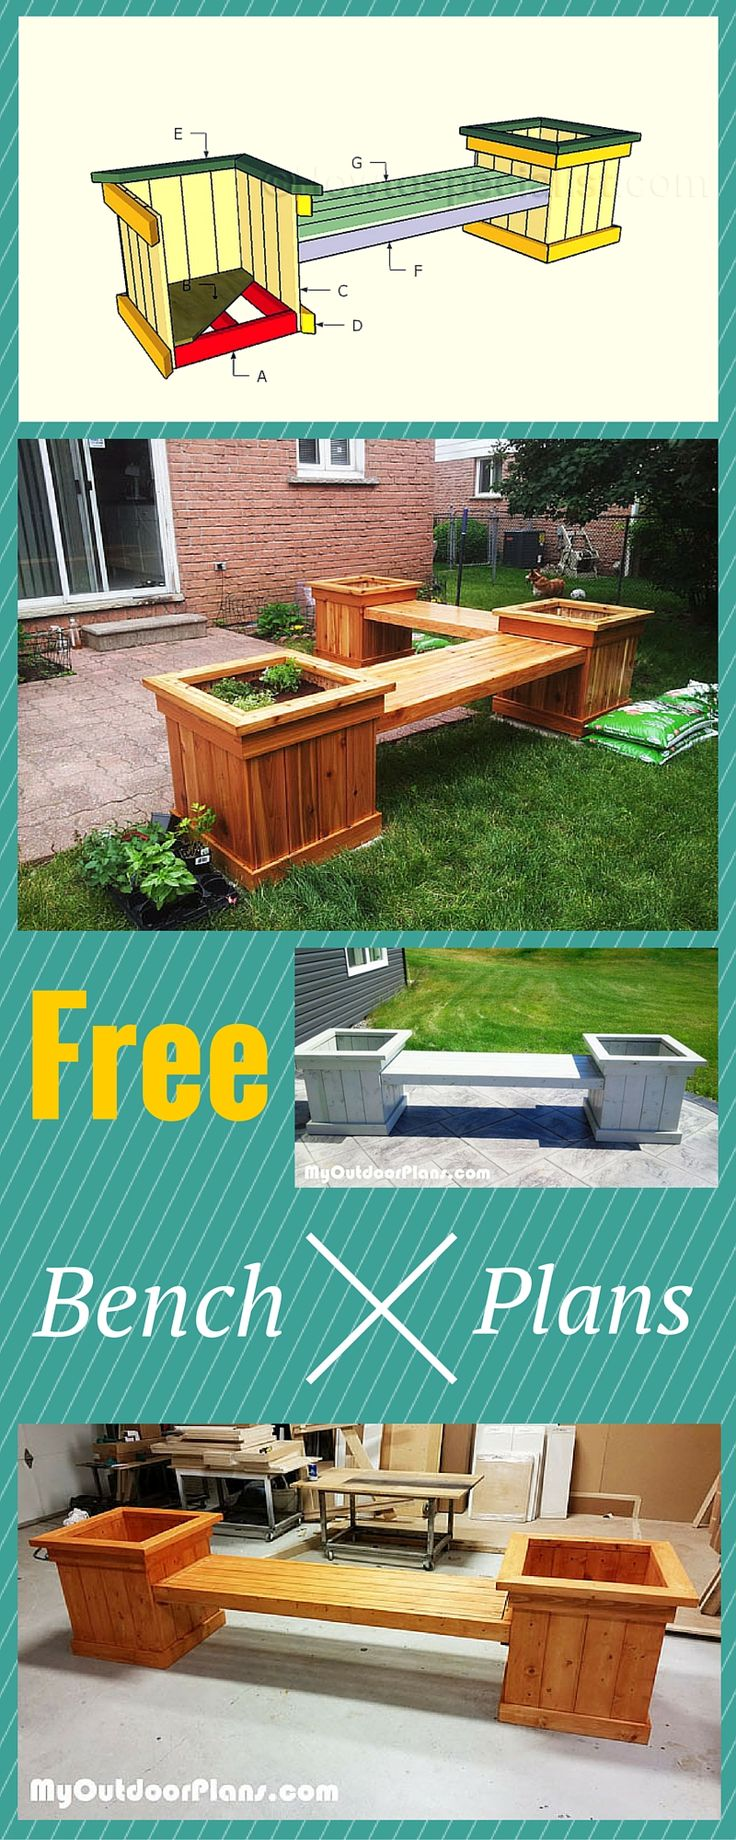 Planter bench plans - Easy to follow tips, tricks and ideal to help you build…